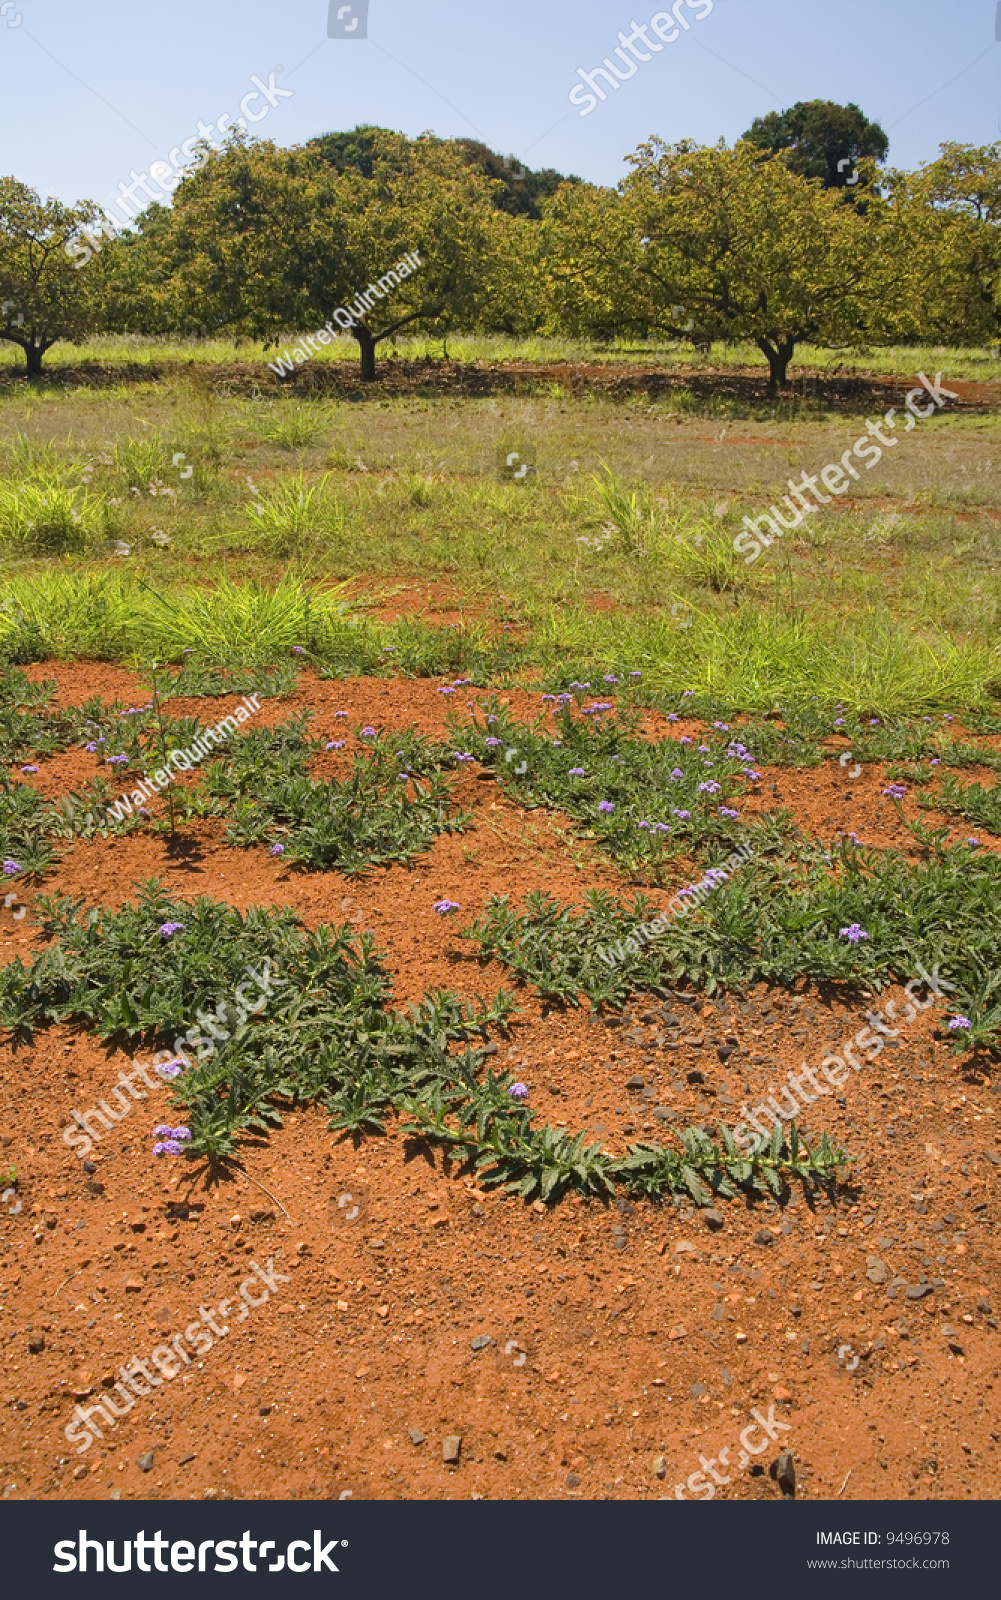 Red soil green plants australias countryside stock photo for Soil and green